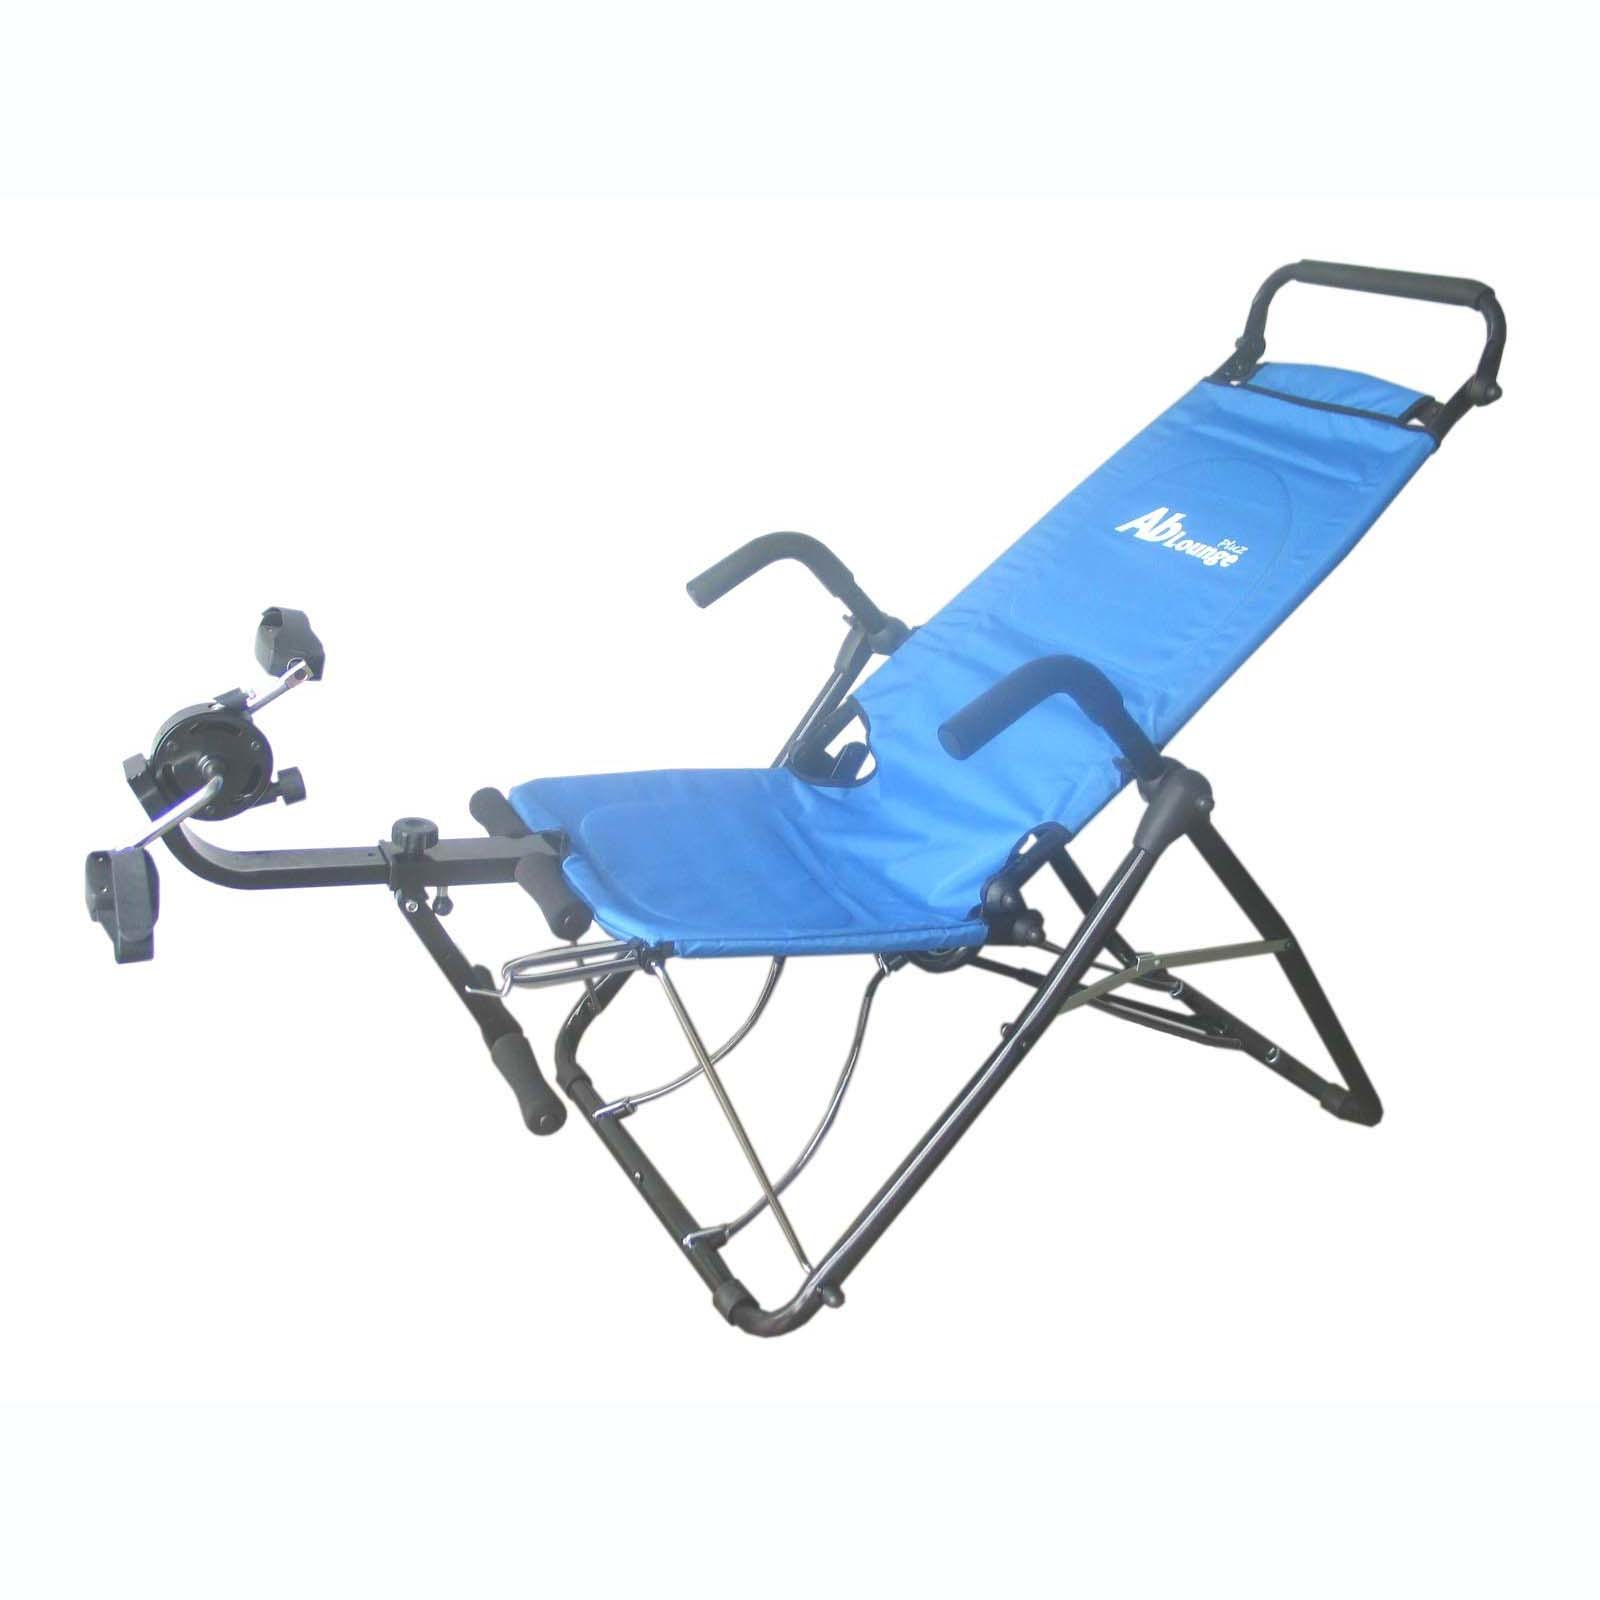 chair gym exercise manual rocker gaming cover china ab lounge with pedal and leg exerciser ht 02f